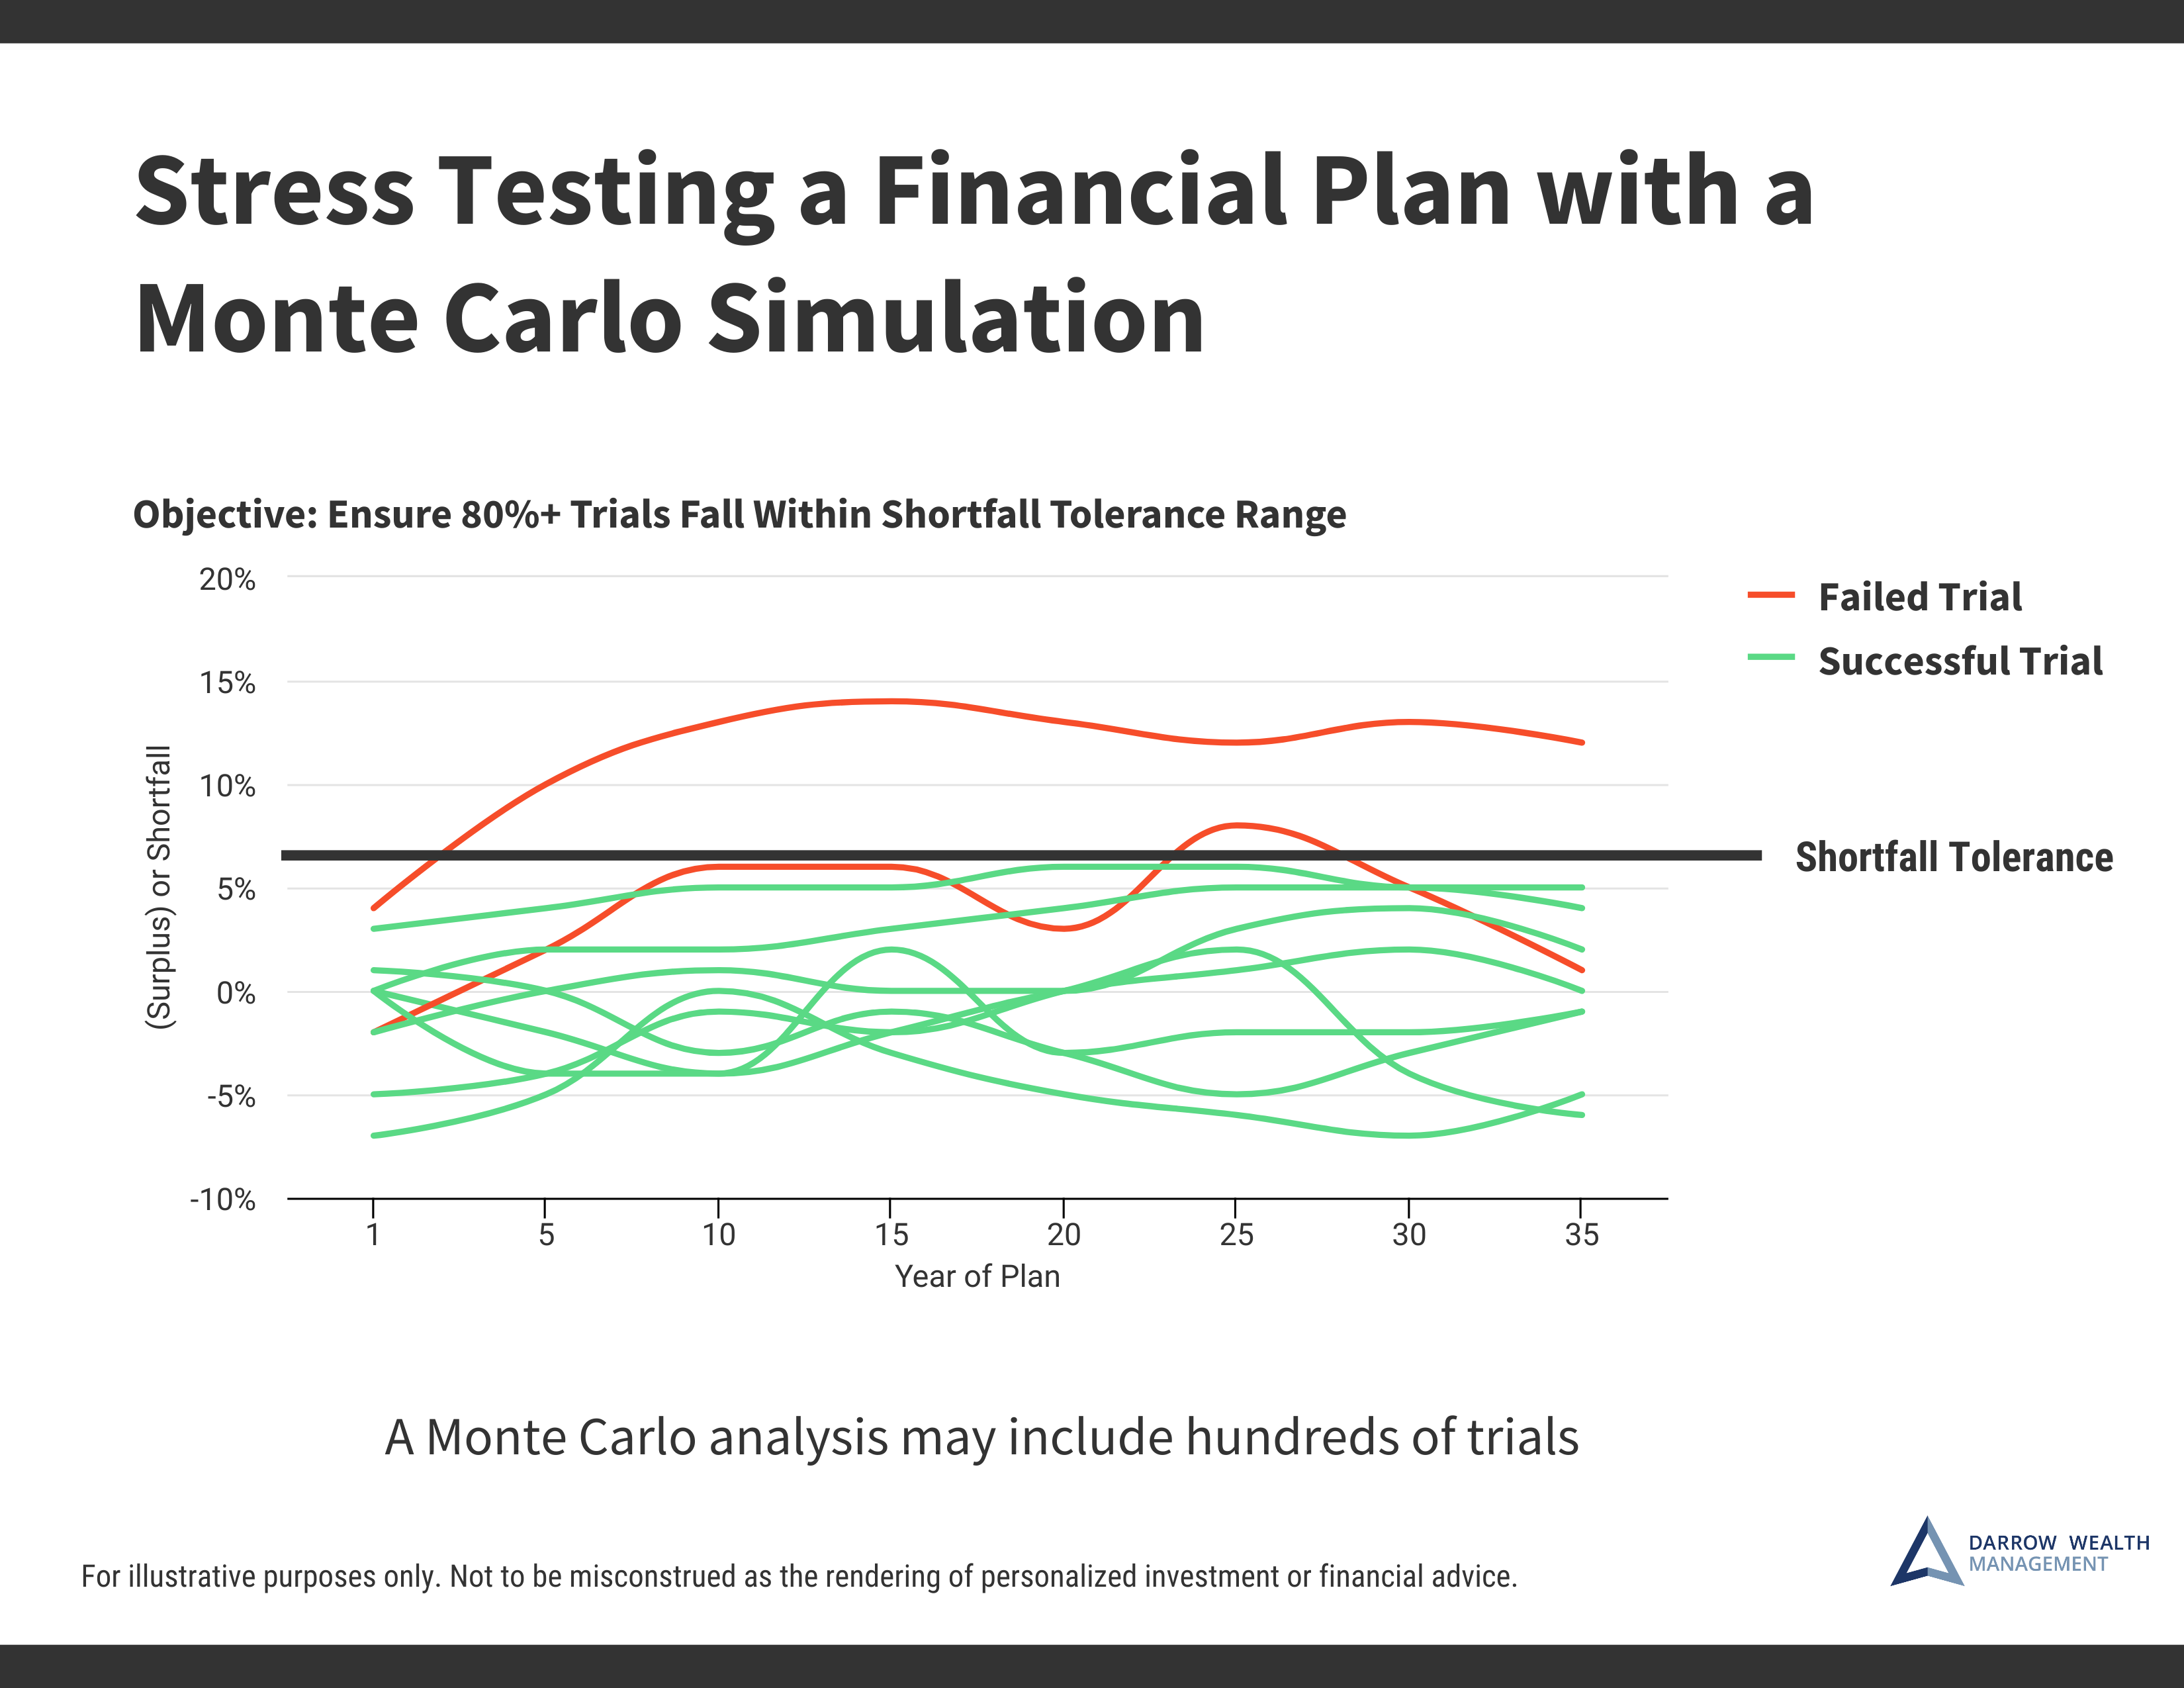 Investment Risk Analysis - Stress Testing Your Portfolio and Financial Plan